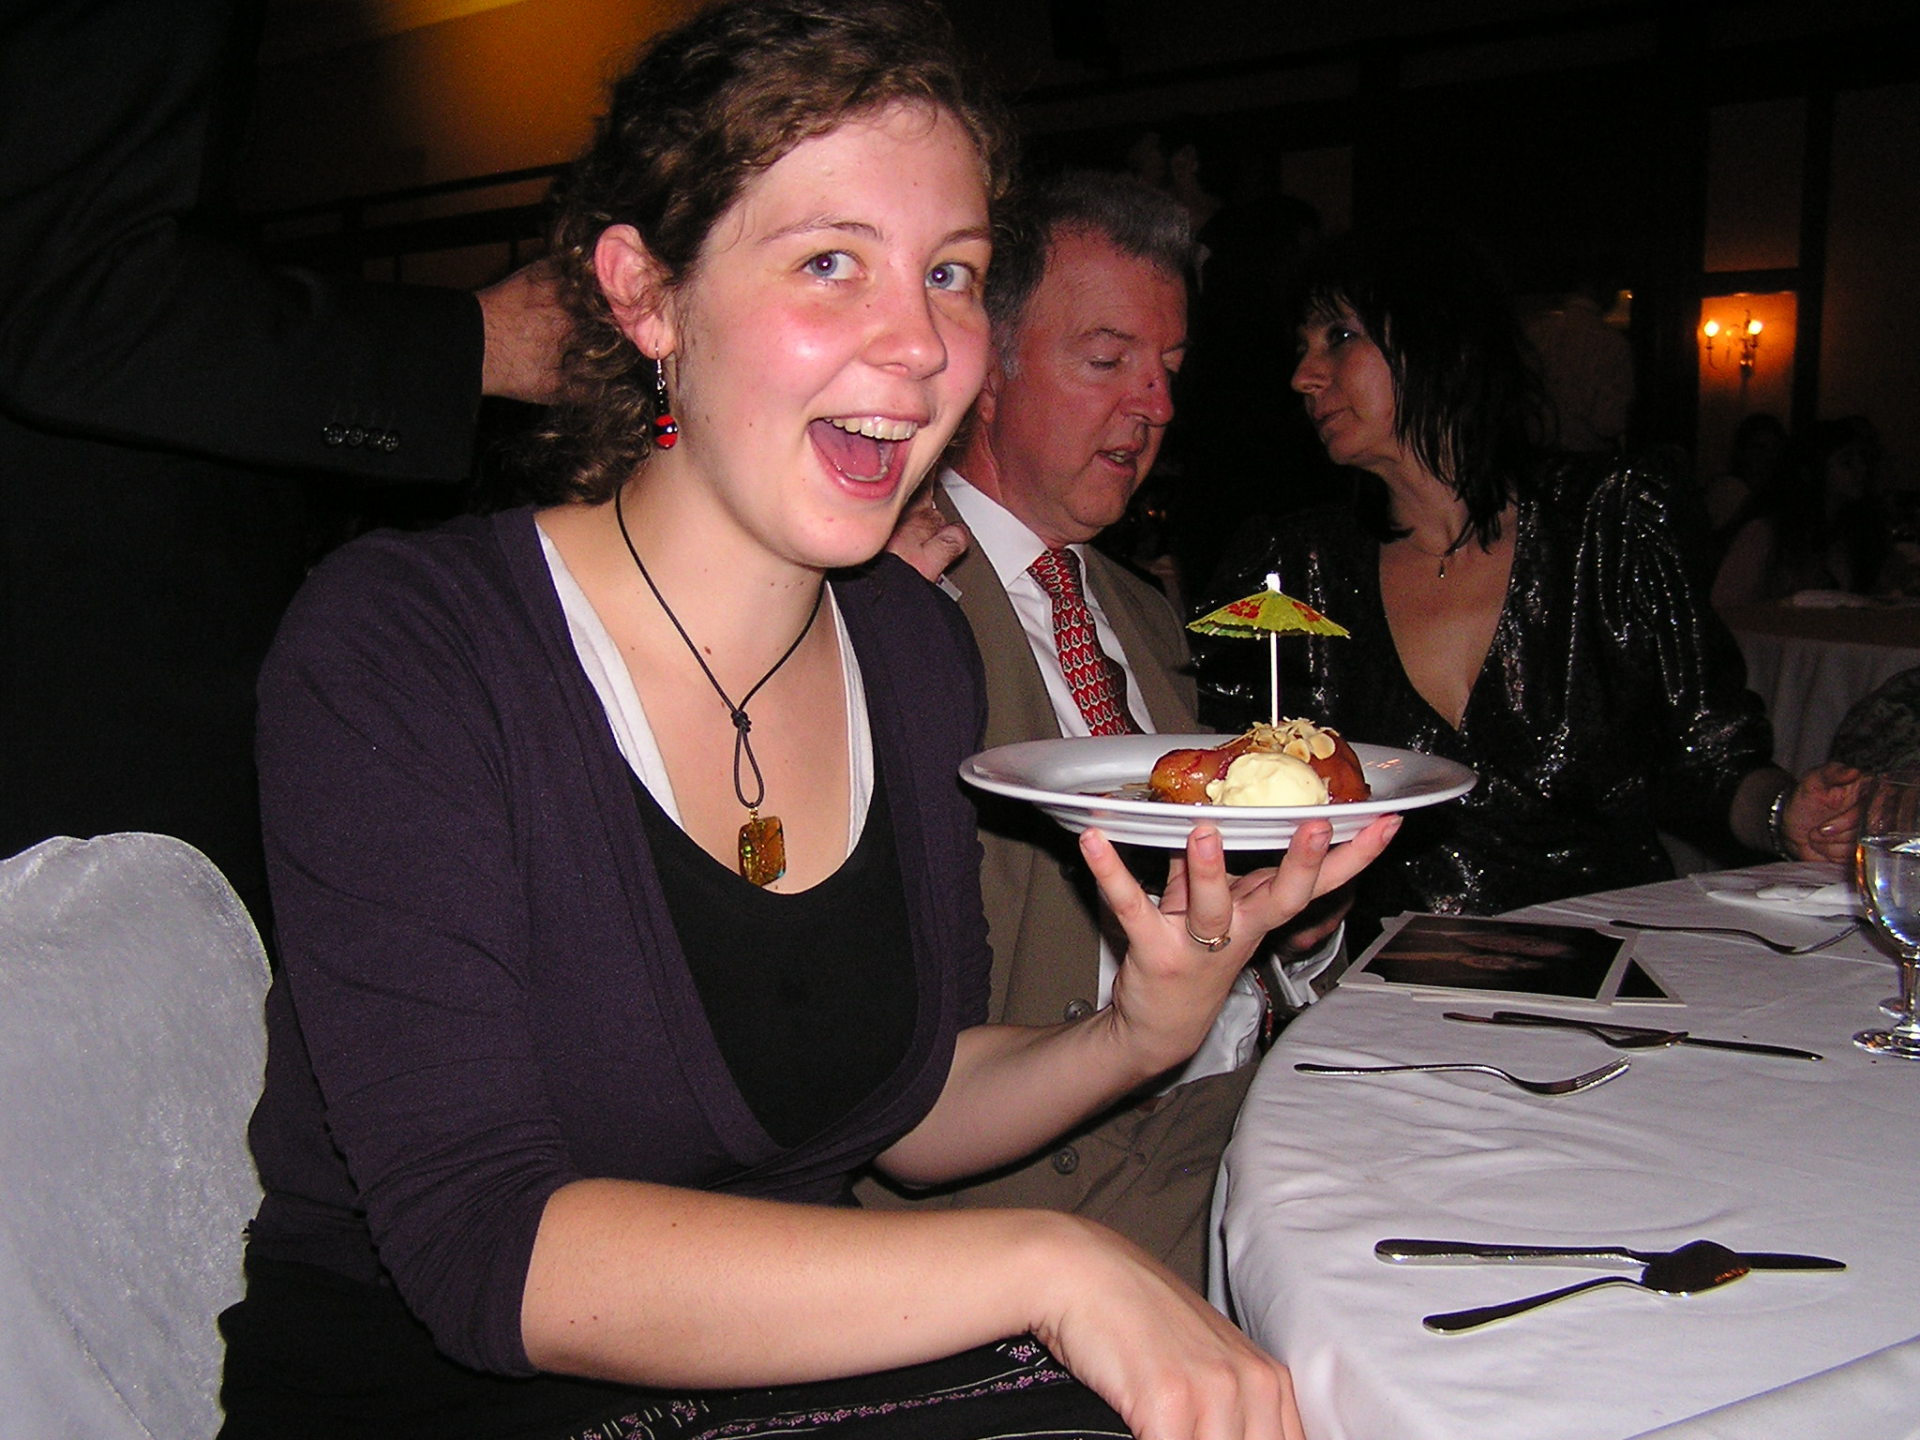 My niece Laura marvels at a dessert plate at the Teachers' Day Gala. Istanbul, Turkey: chapter 45, You must only to love them. http://mershon.wordpress.com